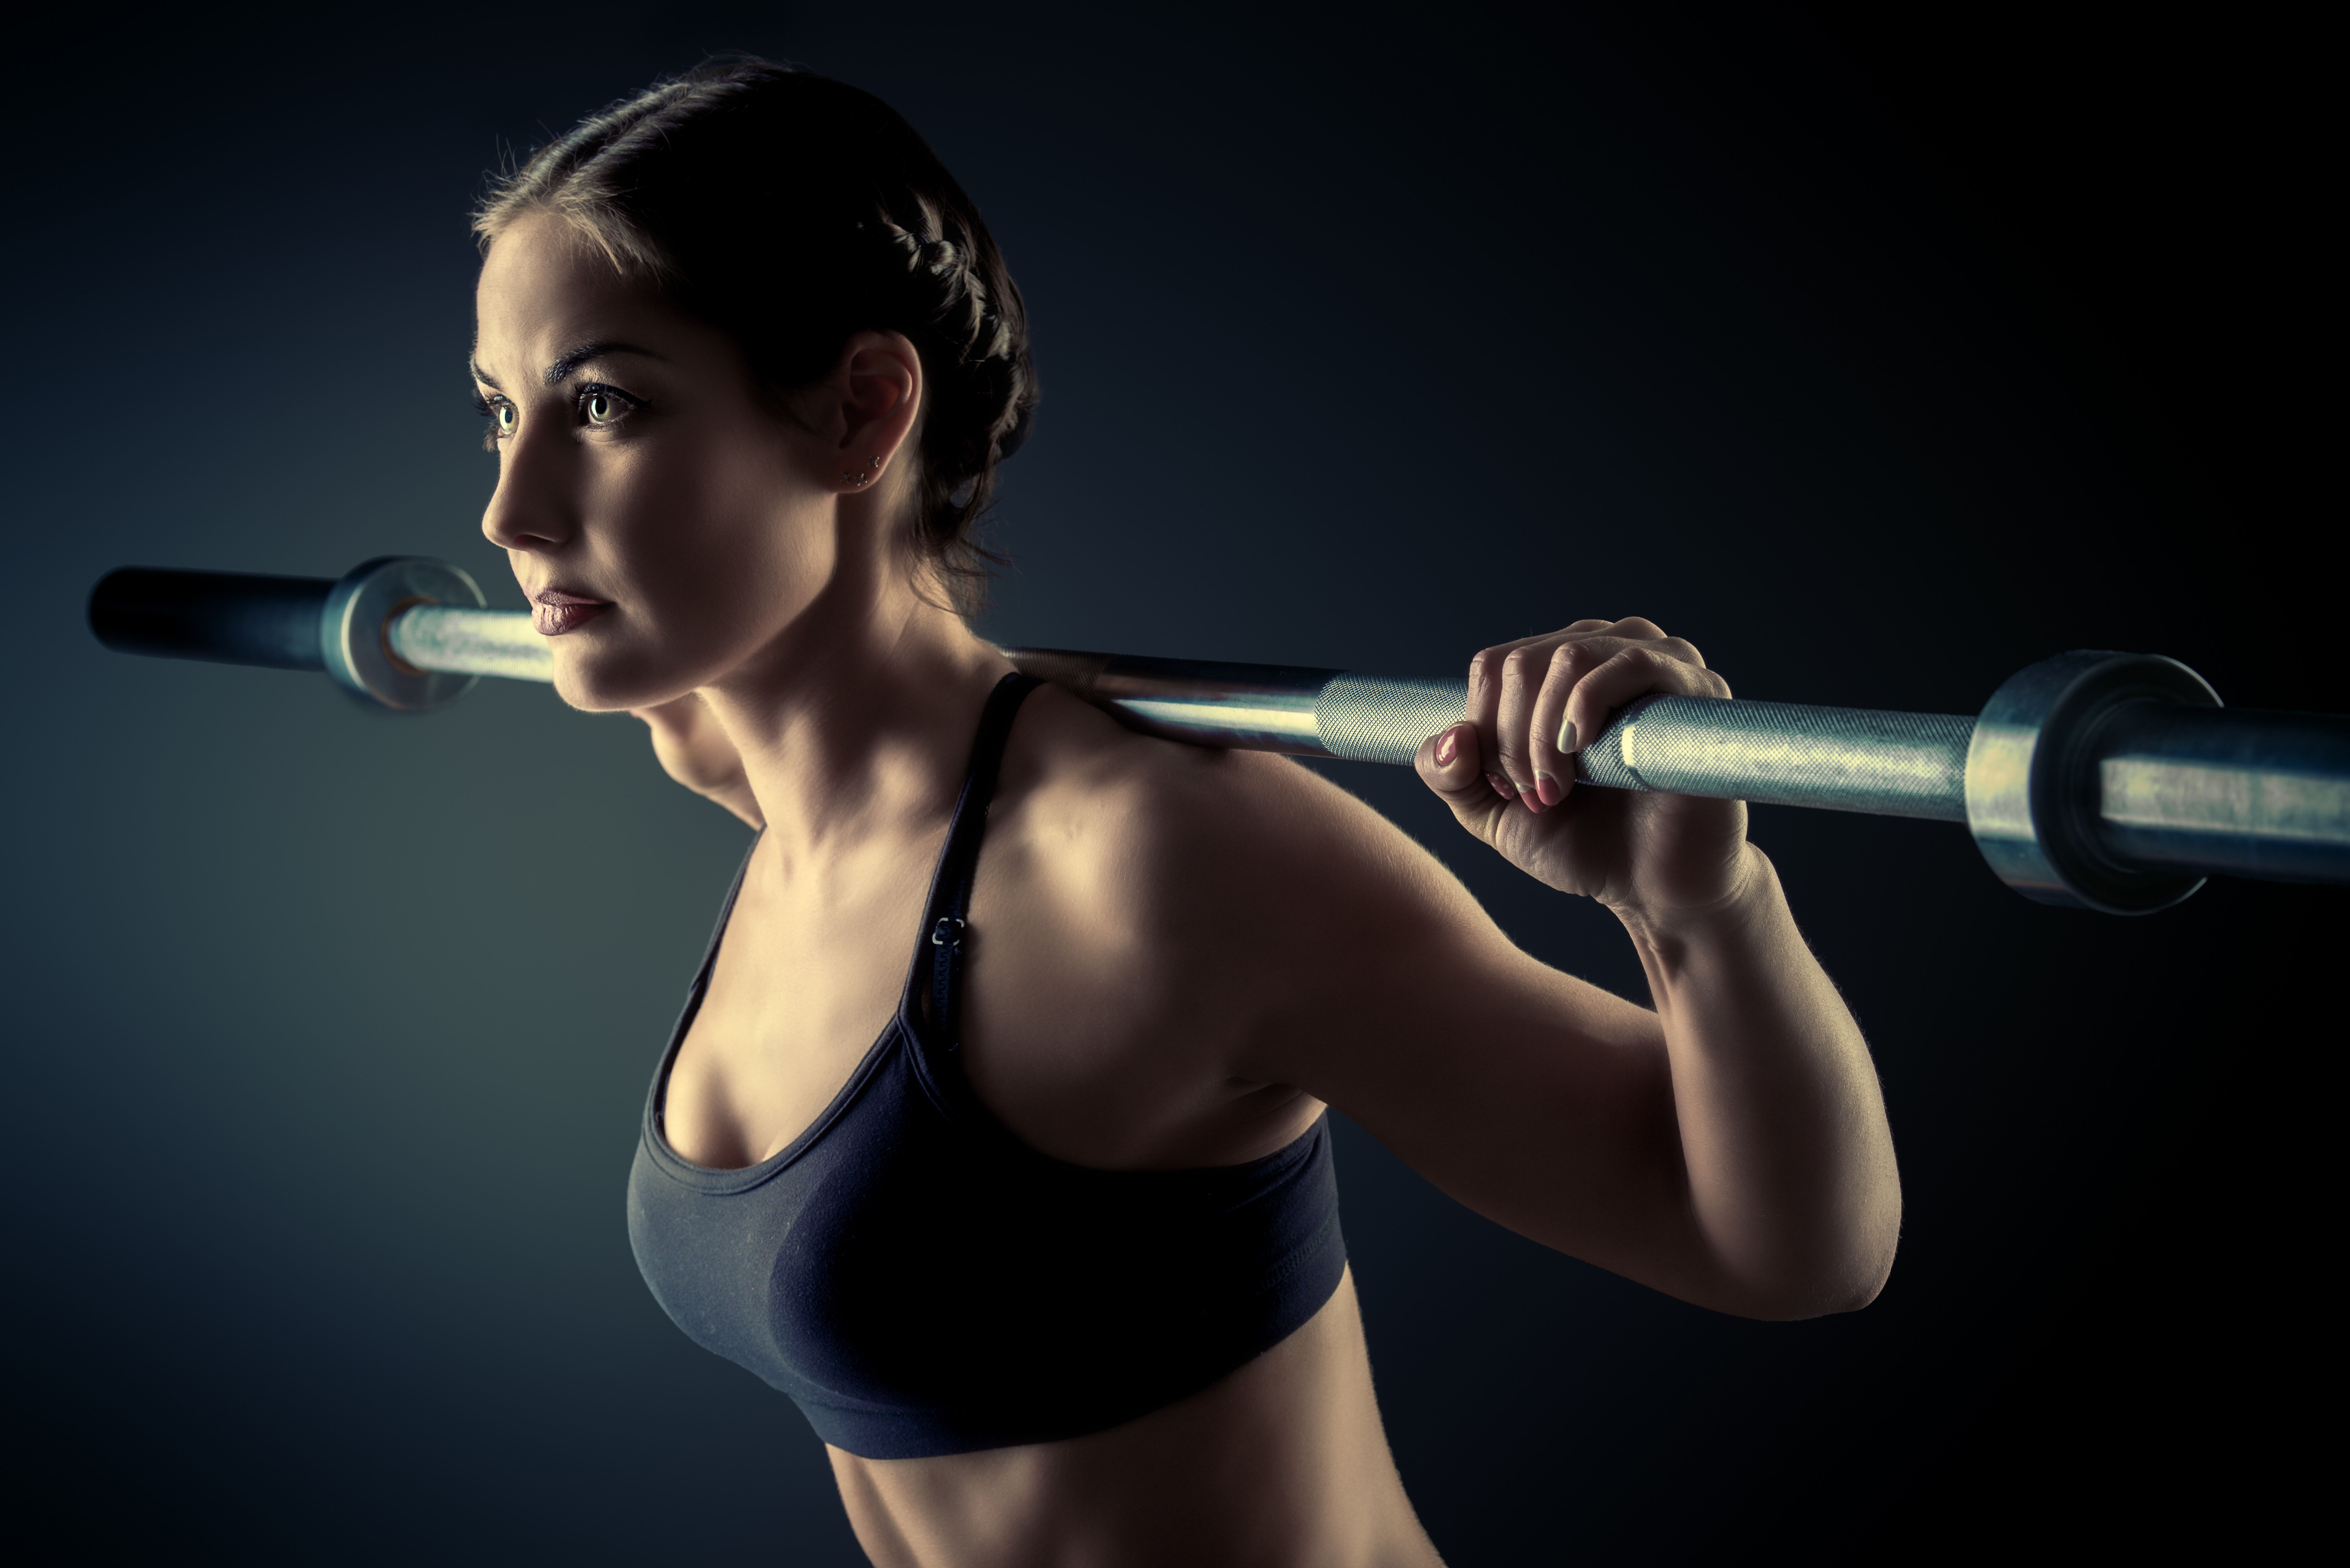 Fitness Wallpapers, Pictures, Image